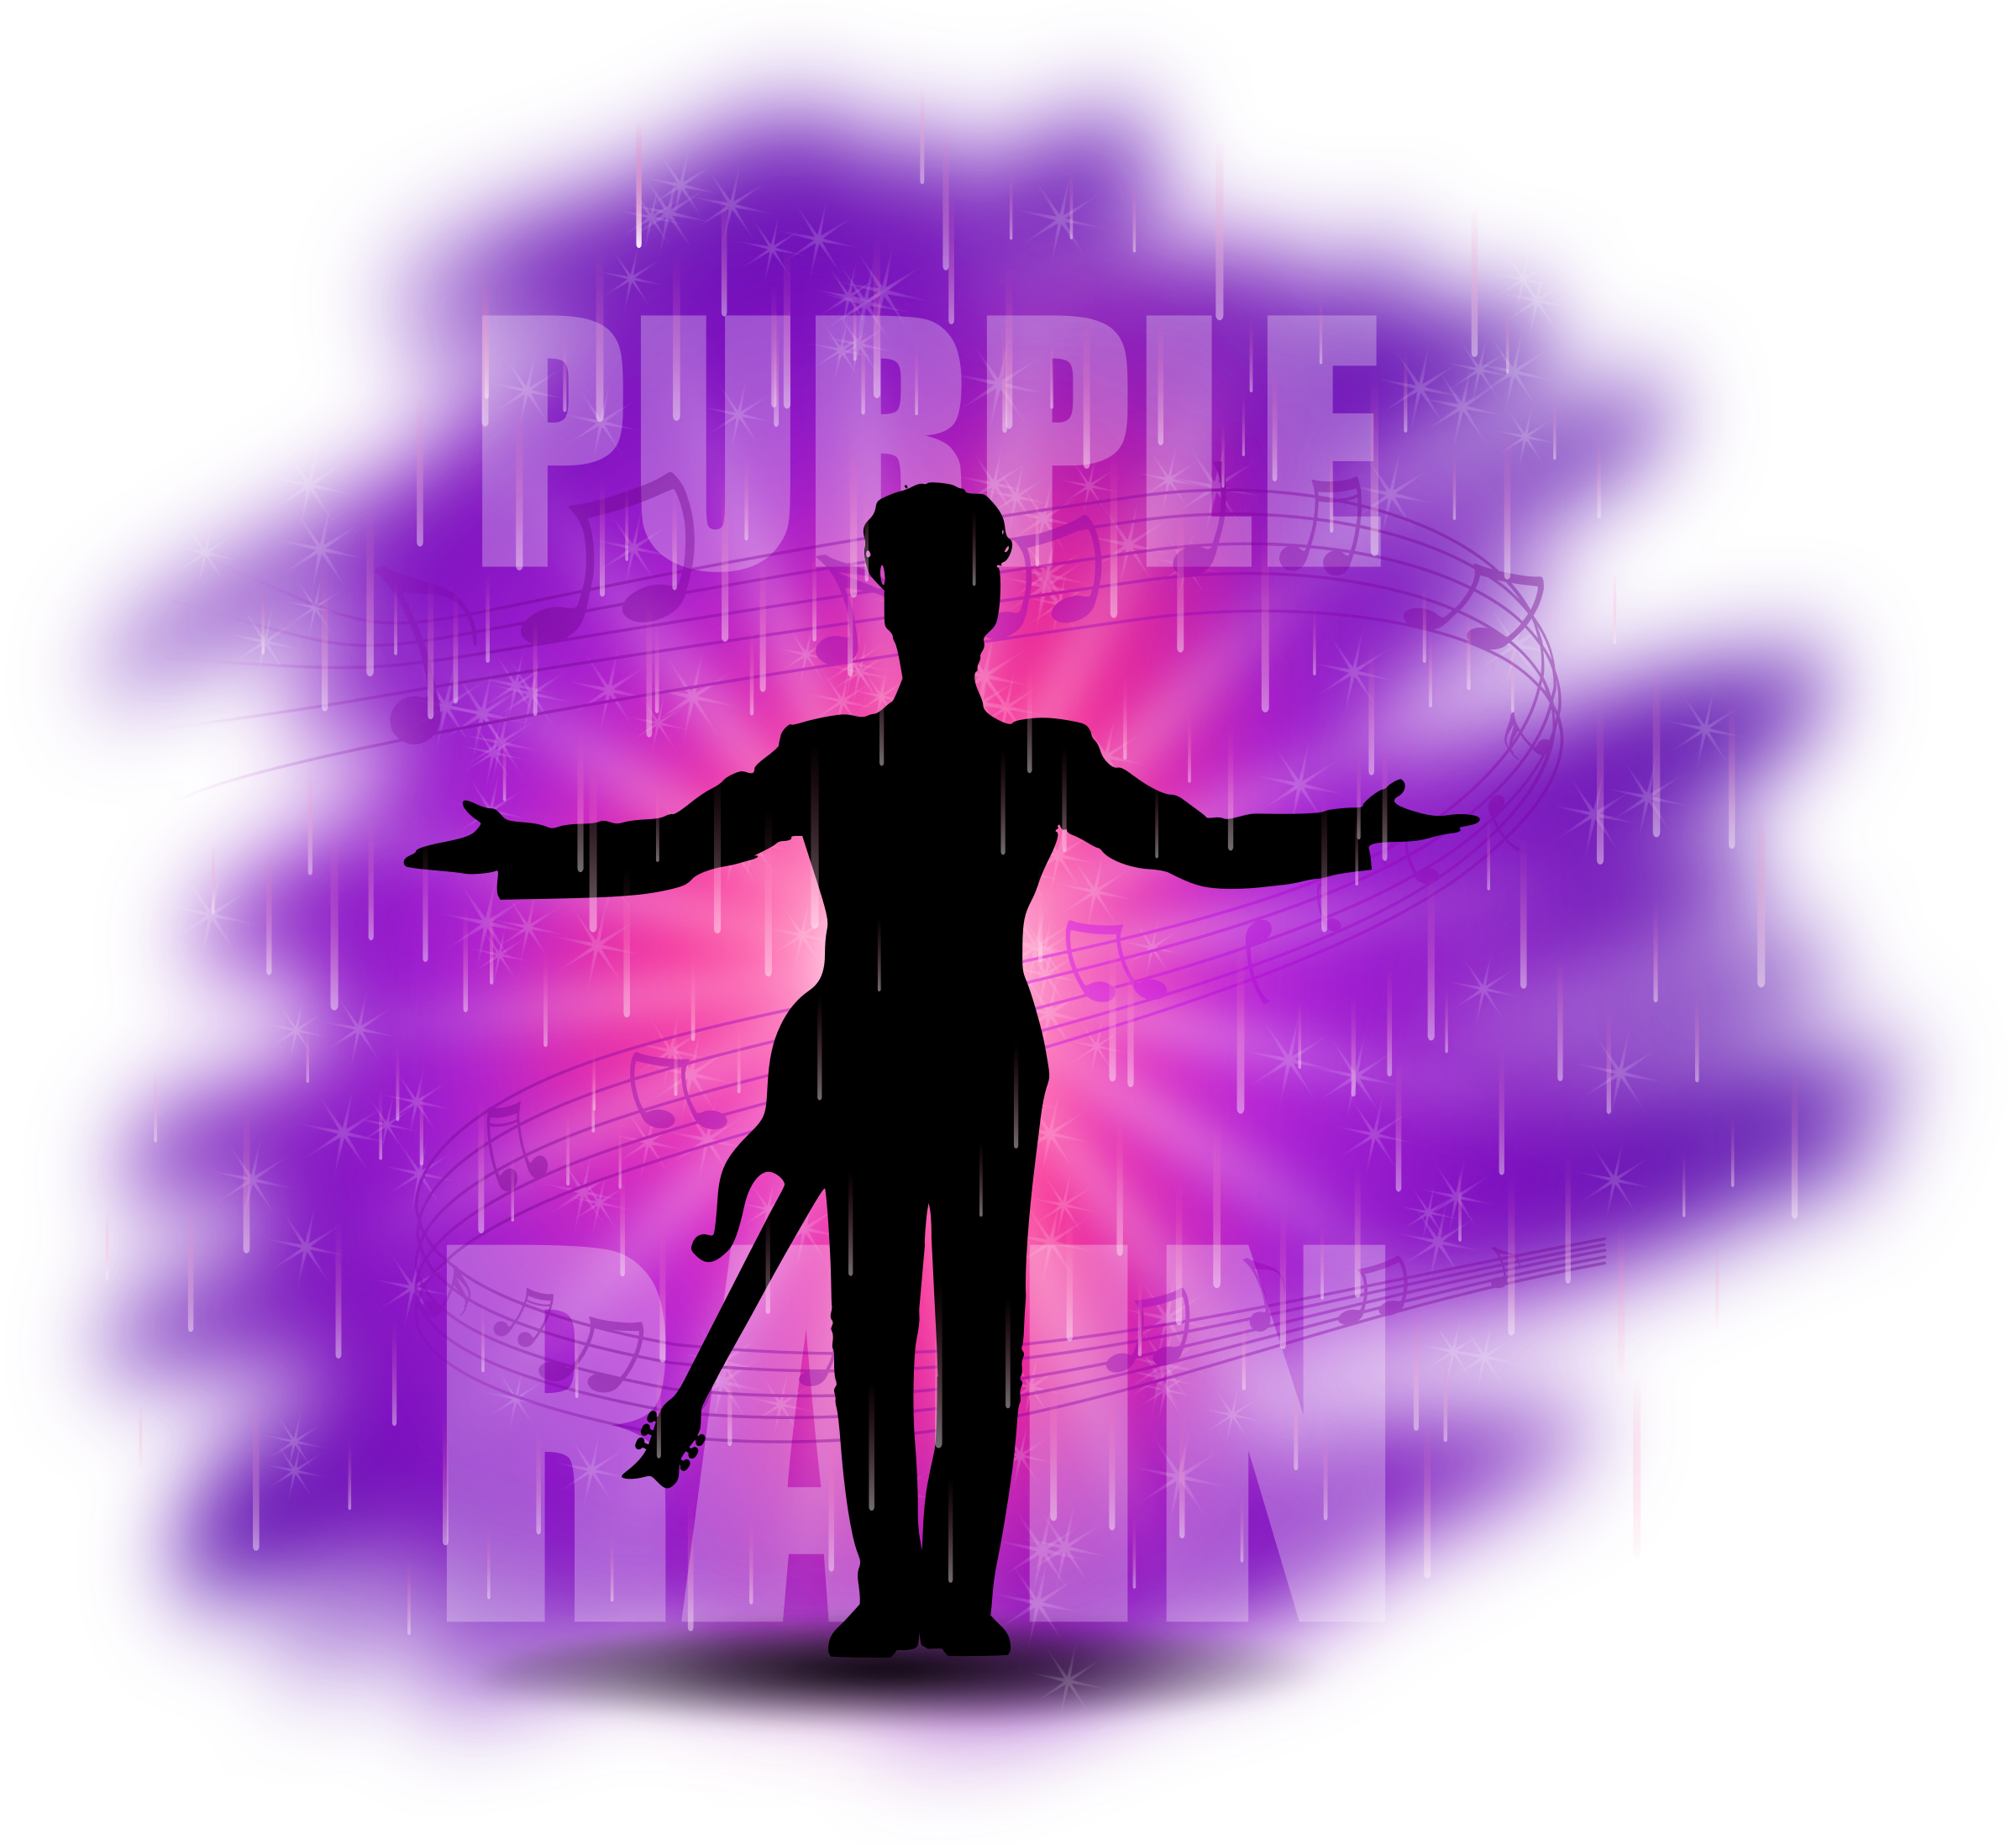 Purple Rain by Chrisdesign